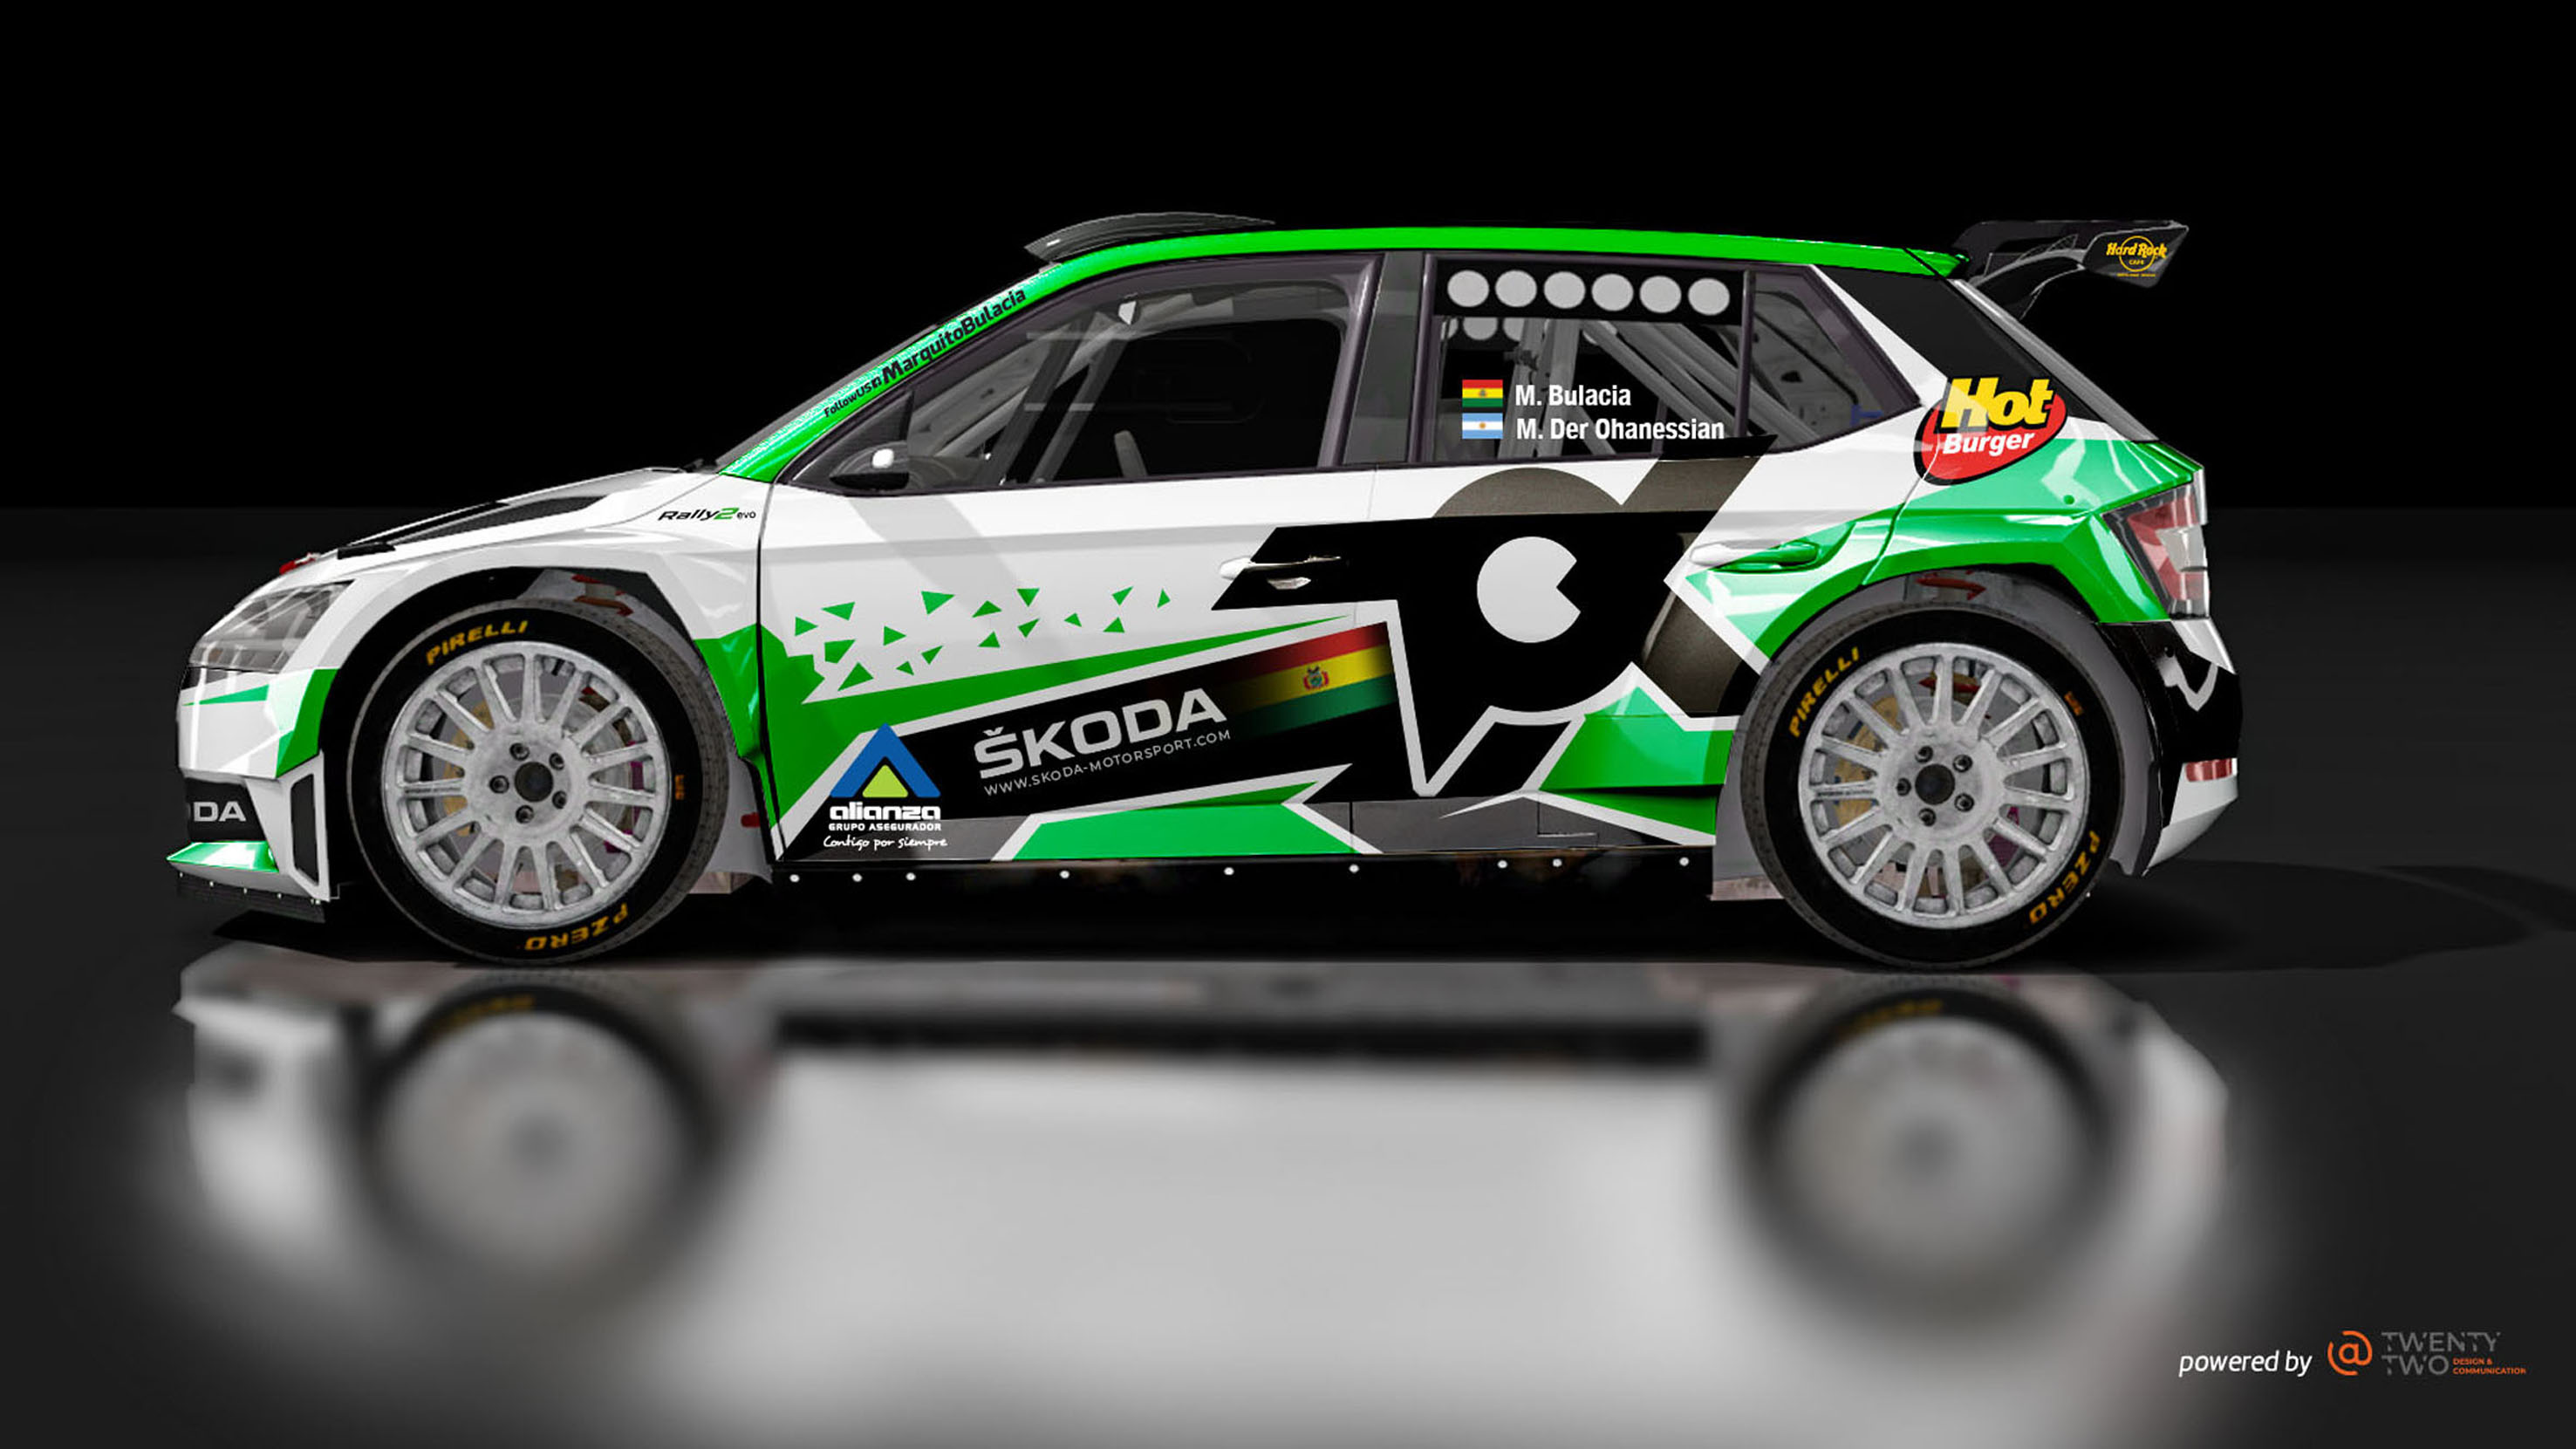 Rallye Monte-Carlo: SKODA FABIA Rally2 evo driver Andreas Mikkelsen among favourites in WRC2 - Image 2